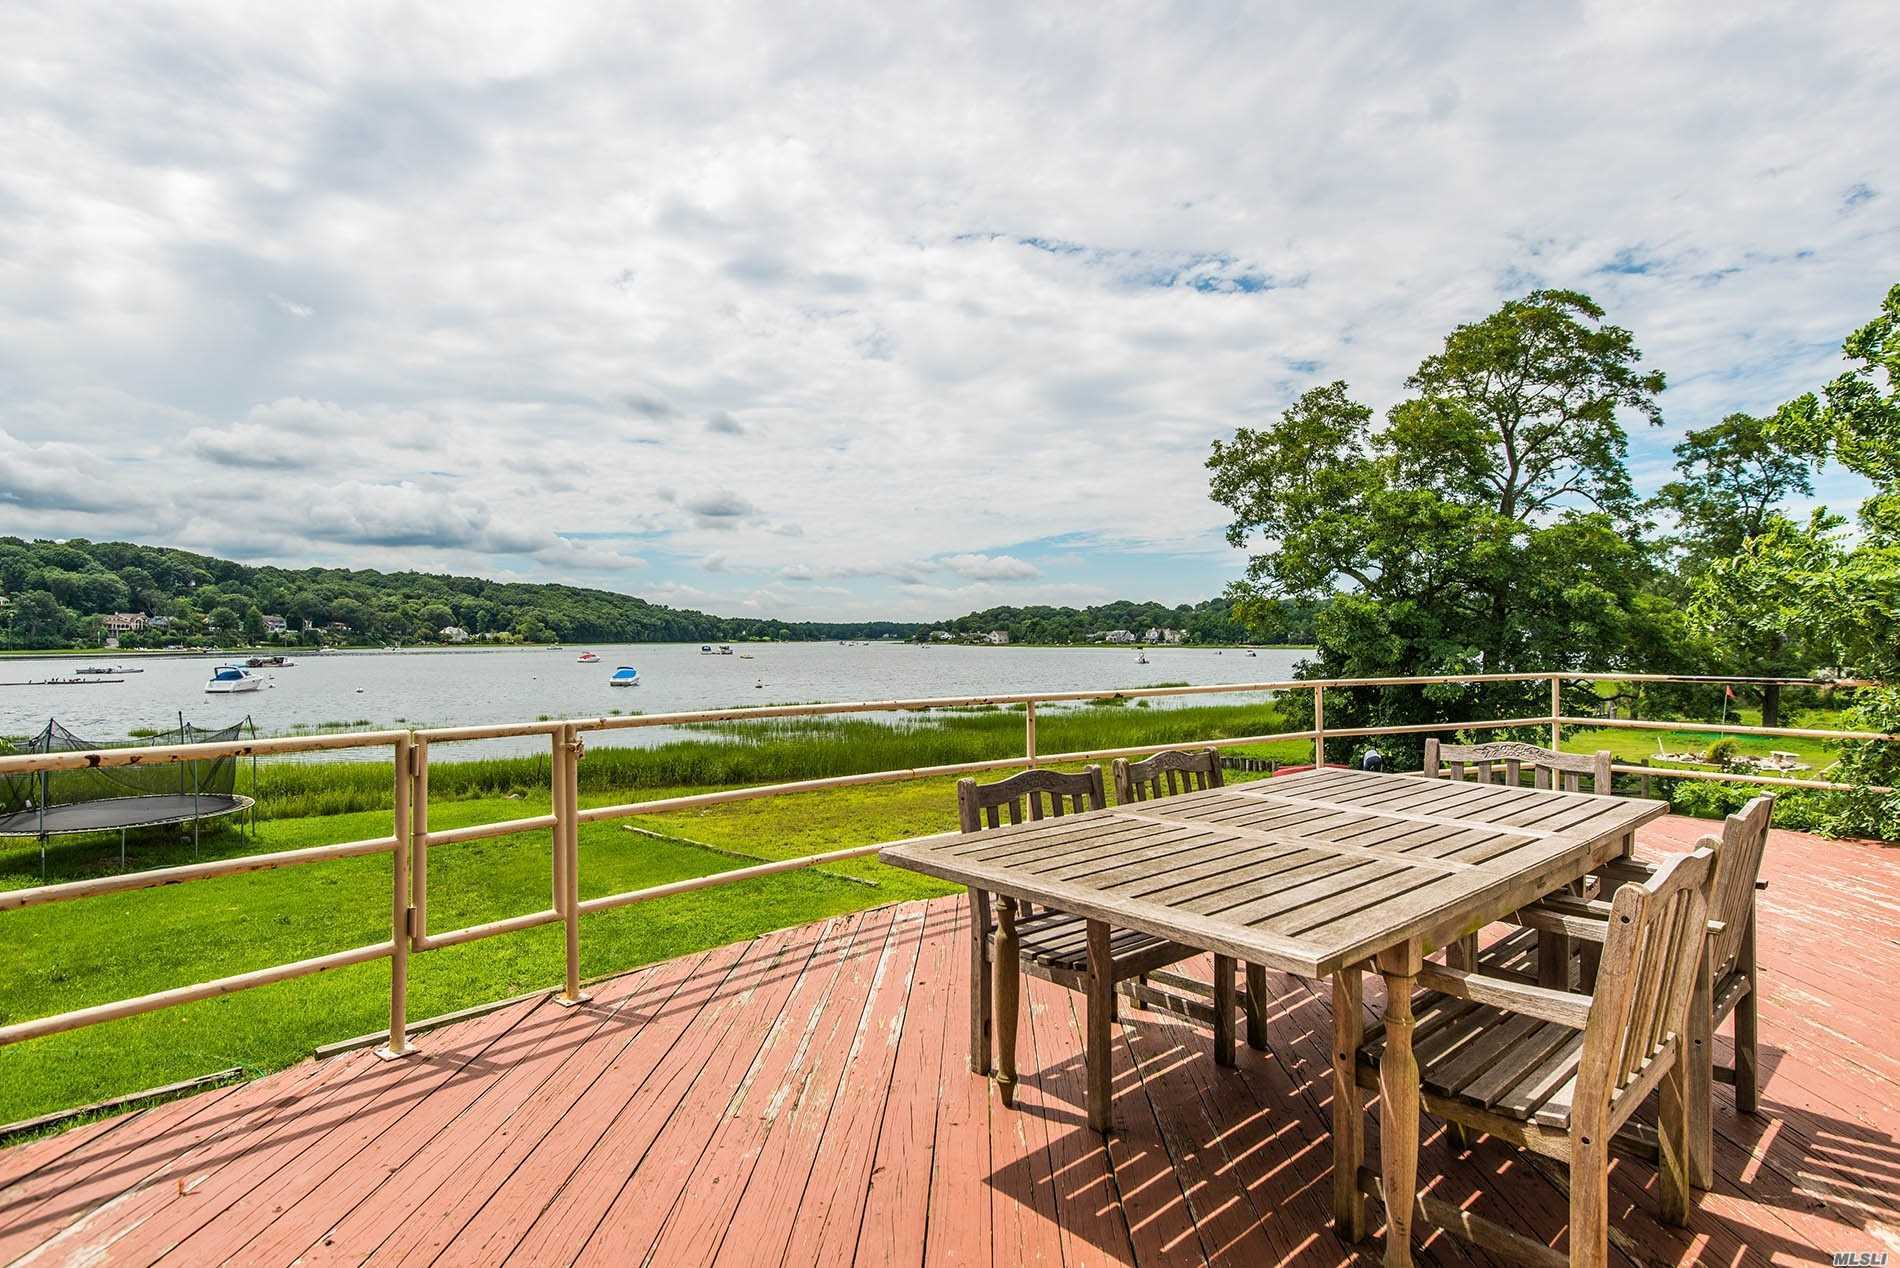 Phenomenal Waterfront Opportunity! Extended Home Offers An Incredibly Versatile Floor Plan W/ 5 Beds, 4 Baths & Breathtaking Bay Views. This Spacious Residence On A Deep Lot Is Brimming W/ Potential To Landscape & Make Your Own. Granite Kit, Home Office, 2 Fplcs, 2 Car Garage. Gas Fuel, Cac. Year Round Or Summer Getaway. Great For Multigenerational Living Or House Guests. Sound Side Beach Rights & Bay Side Mooring Rights! Lots Of House For The Money & A Serene Waterfront Lifestyle...Wow!